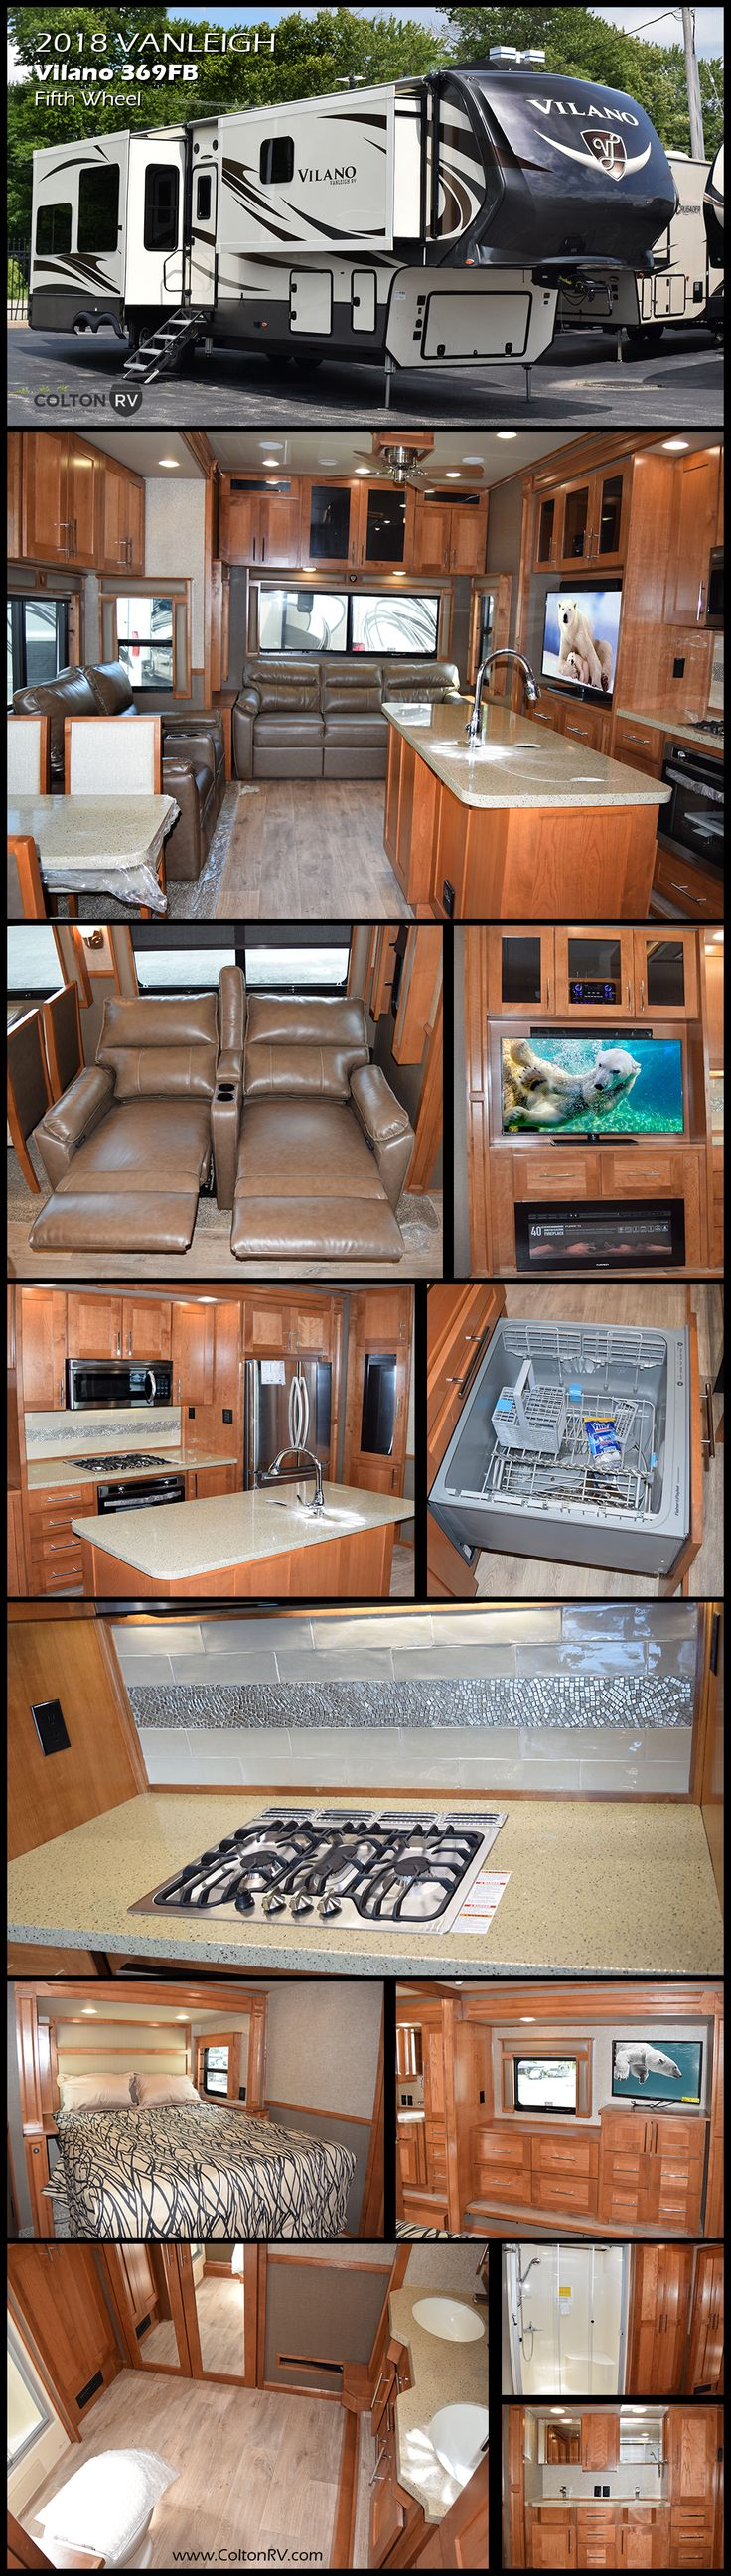 One of the abundant advantages to being a Vilano customer is getting everything a luxury fifth wheel offers without the price tag. This 2018 VANLEIGH VILANO 369FB Fifth Wheel presents all the elements one might need for an active weekend away or an extended vacation getaway. Model 369FB features quadruple slides, one and a half baths, 18 Cu Ft residential fridge, fireplace and so much more! You will enjoy the large master bathroom with double sinks, shower, toilet plus a full front wall…